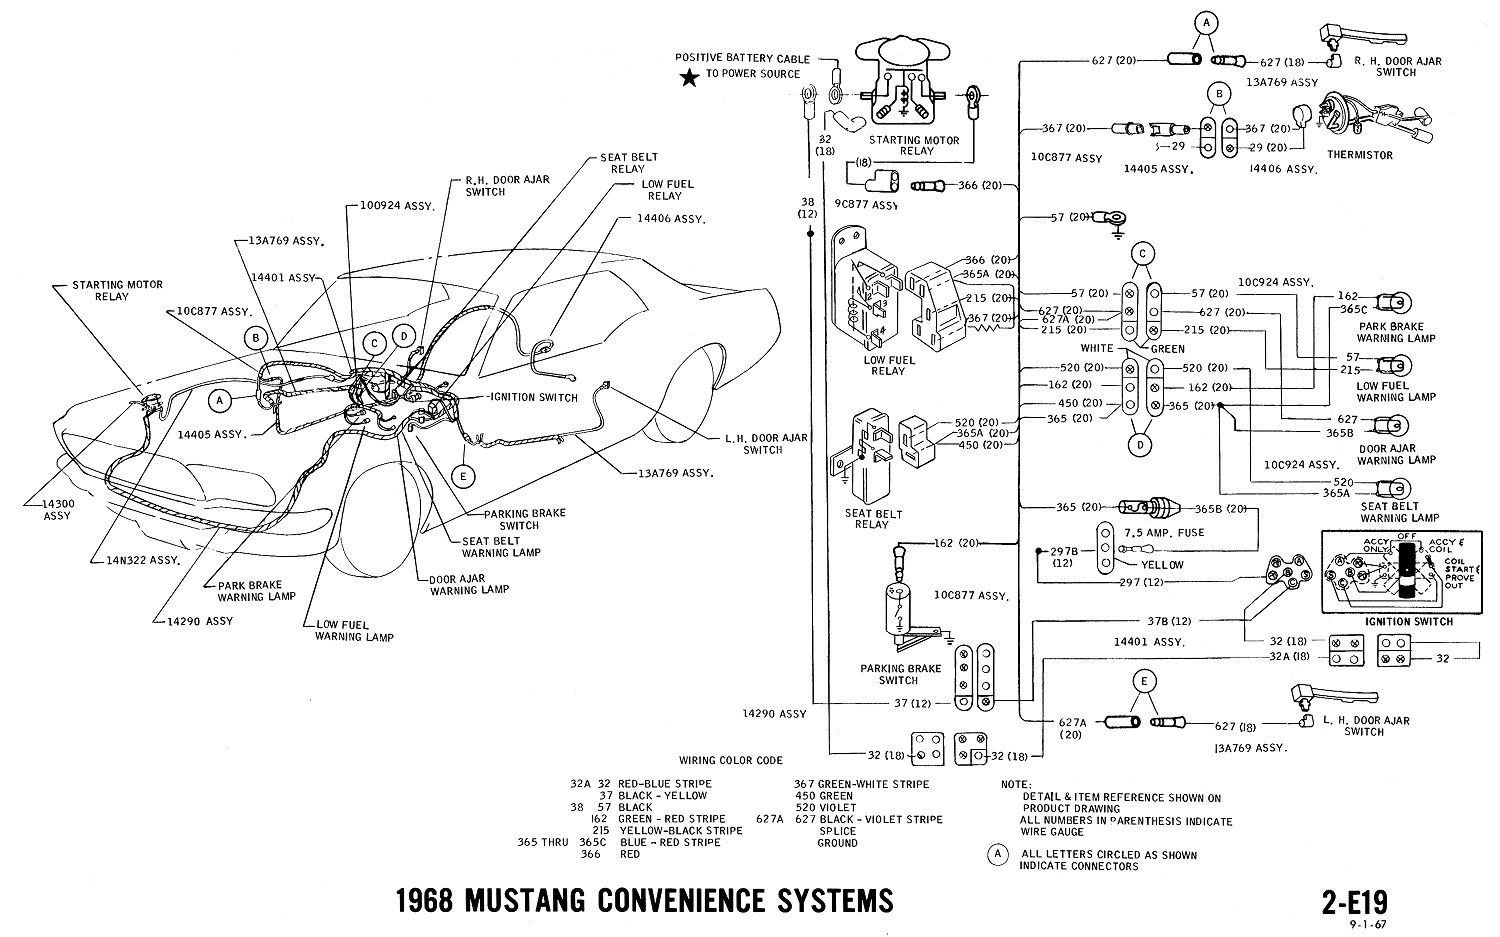 1968 mustang wiring diagram convenience systems 1968 mustang wiring diagram manual 68 mustang ignition wiring 1967 mustang ignition wiring diagram at bayanpartner.co